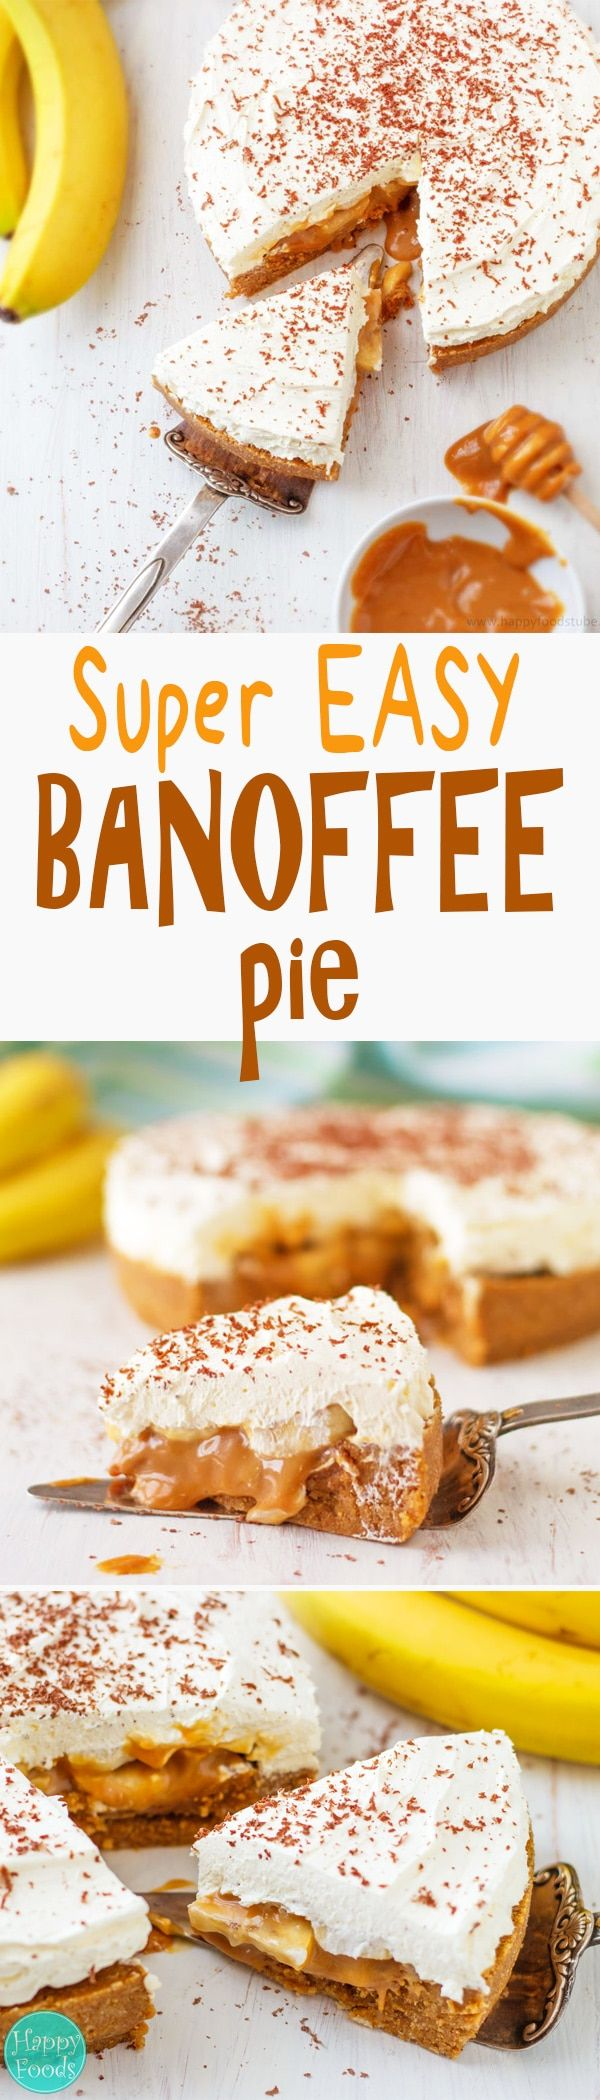 No bake Banana Banoffee Pie is also flourless and eggless dessert recipe. Made from simple ingredients bananas, cream & toffee. Homemade no bake cake, ready in 30 minutes via @happyfoodstube